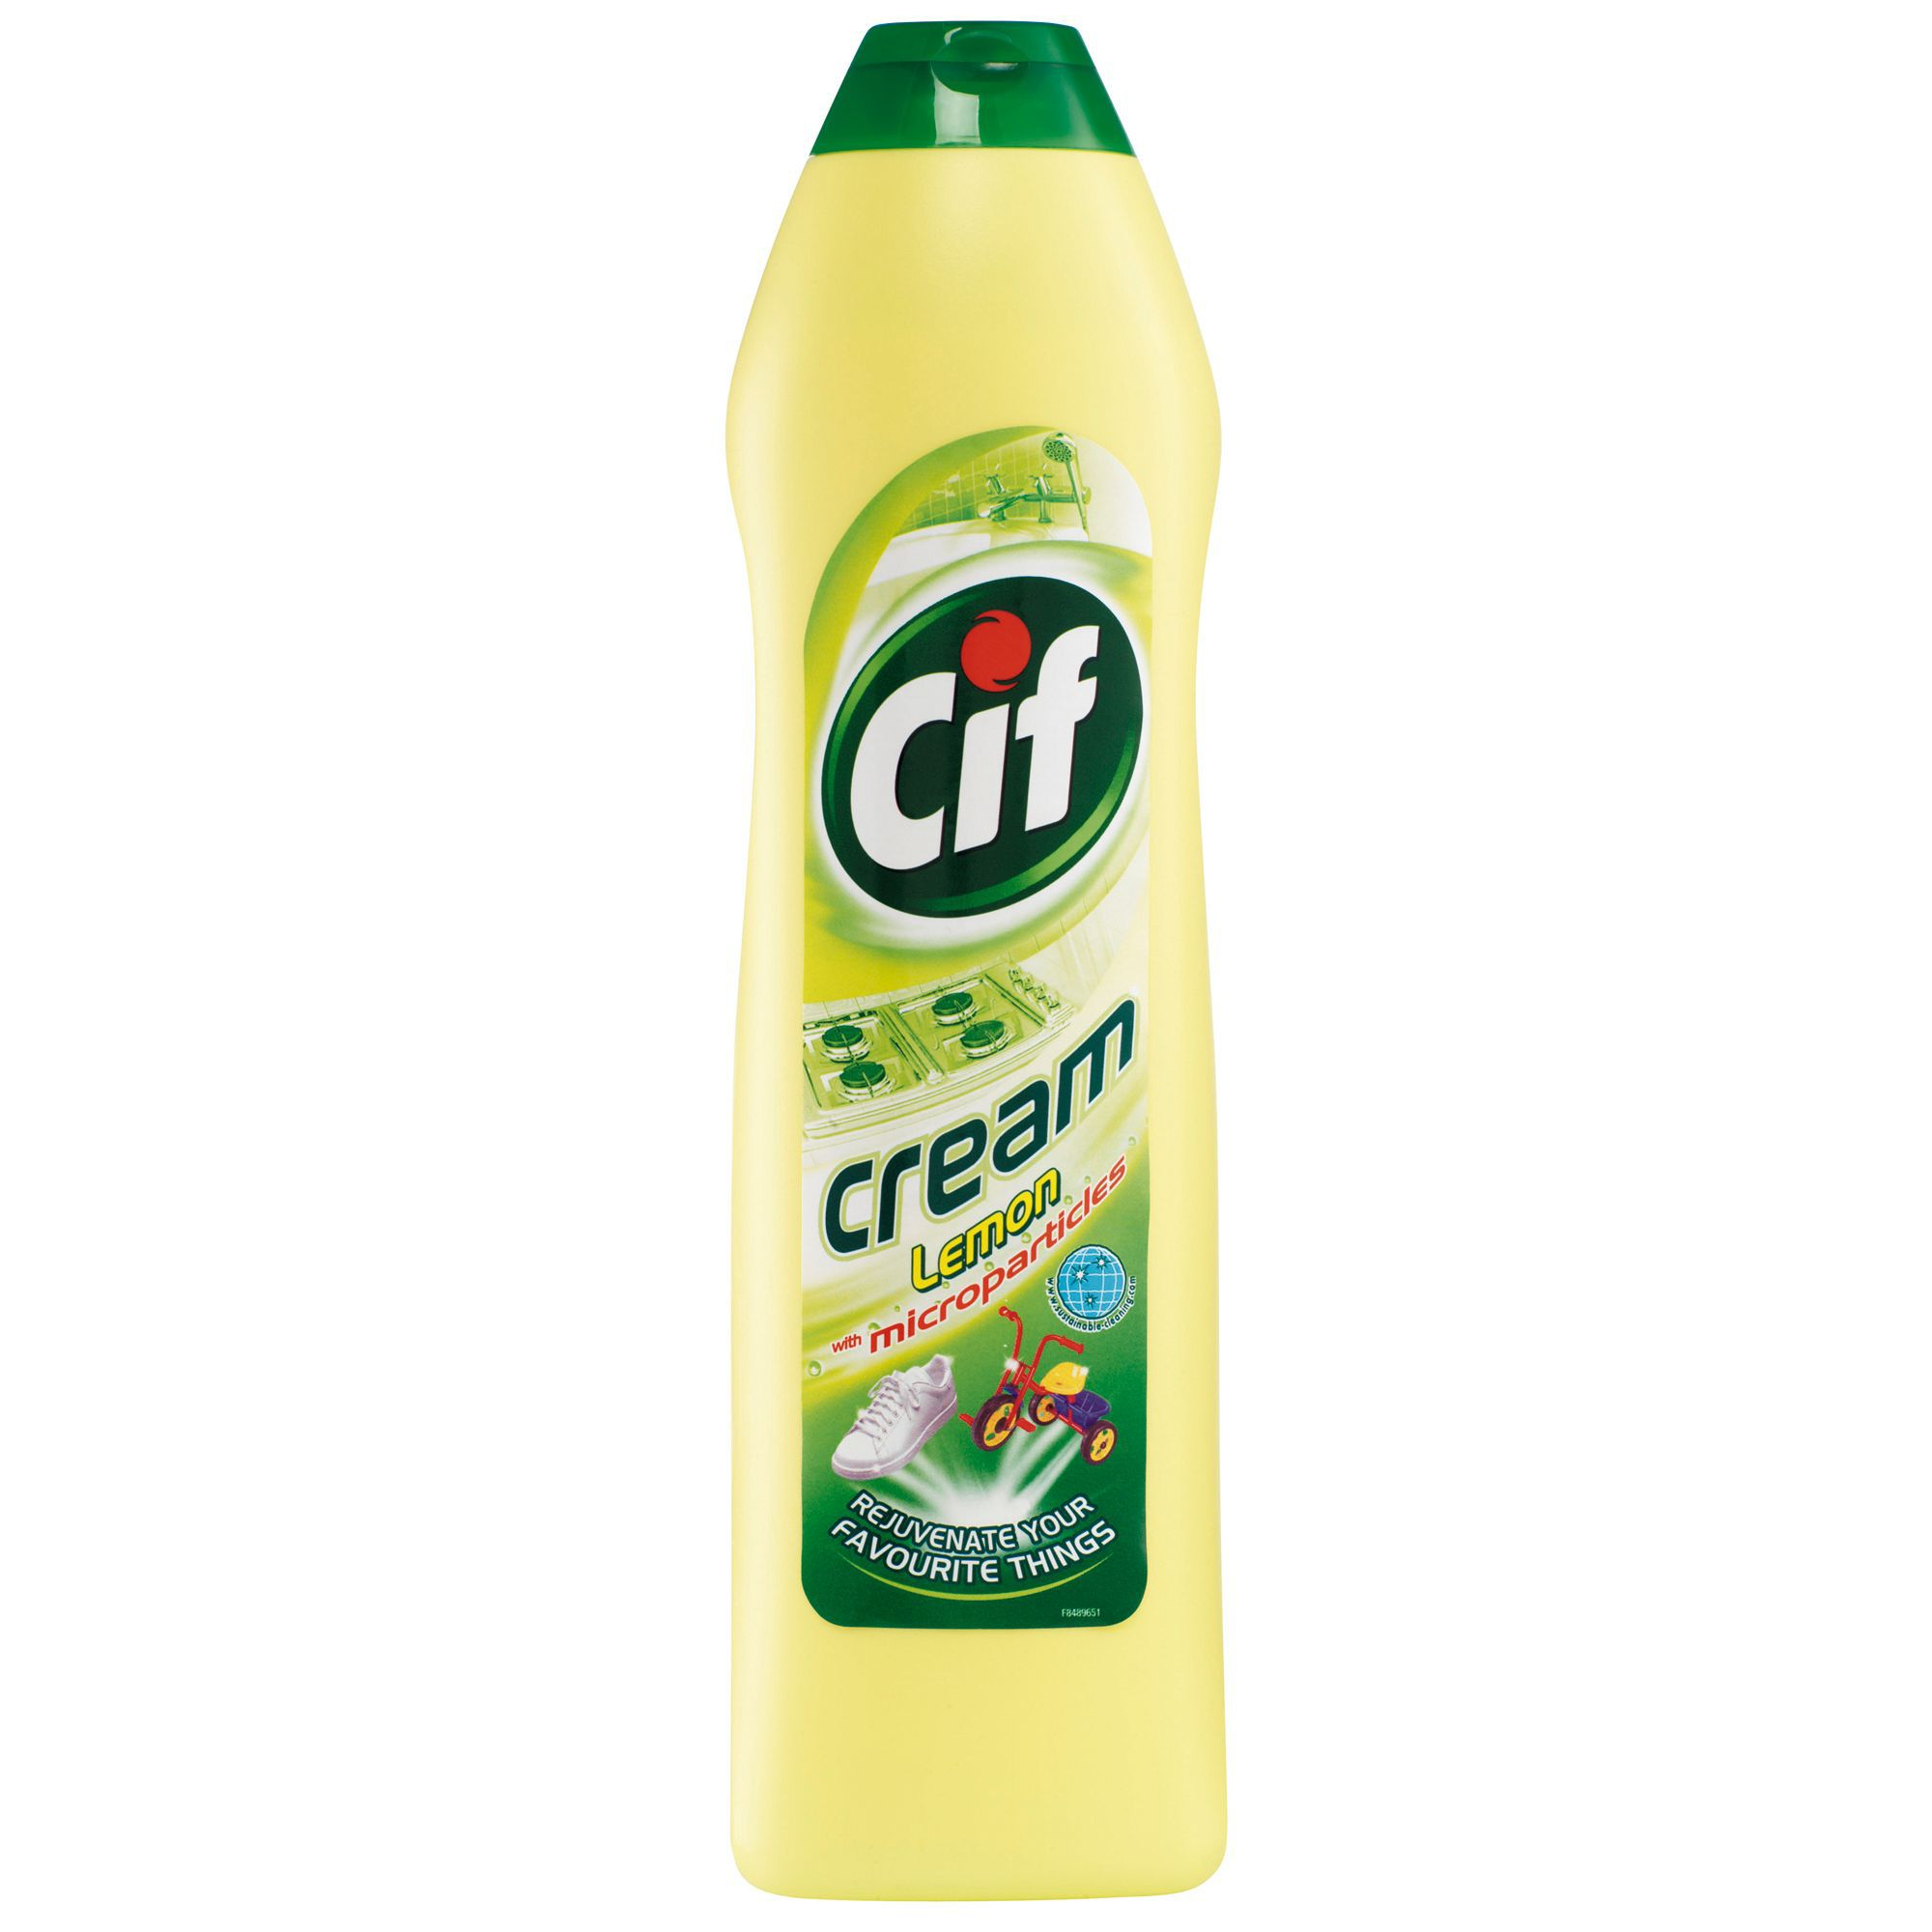 Cif Cream Cleaner 500 Ml Departments Diy At B Amp Q